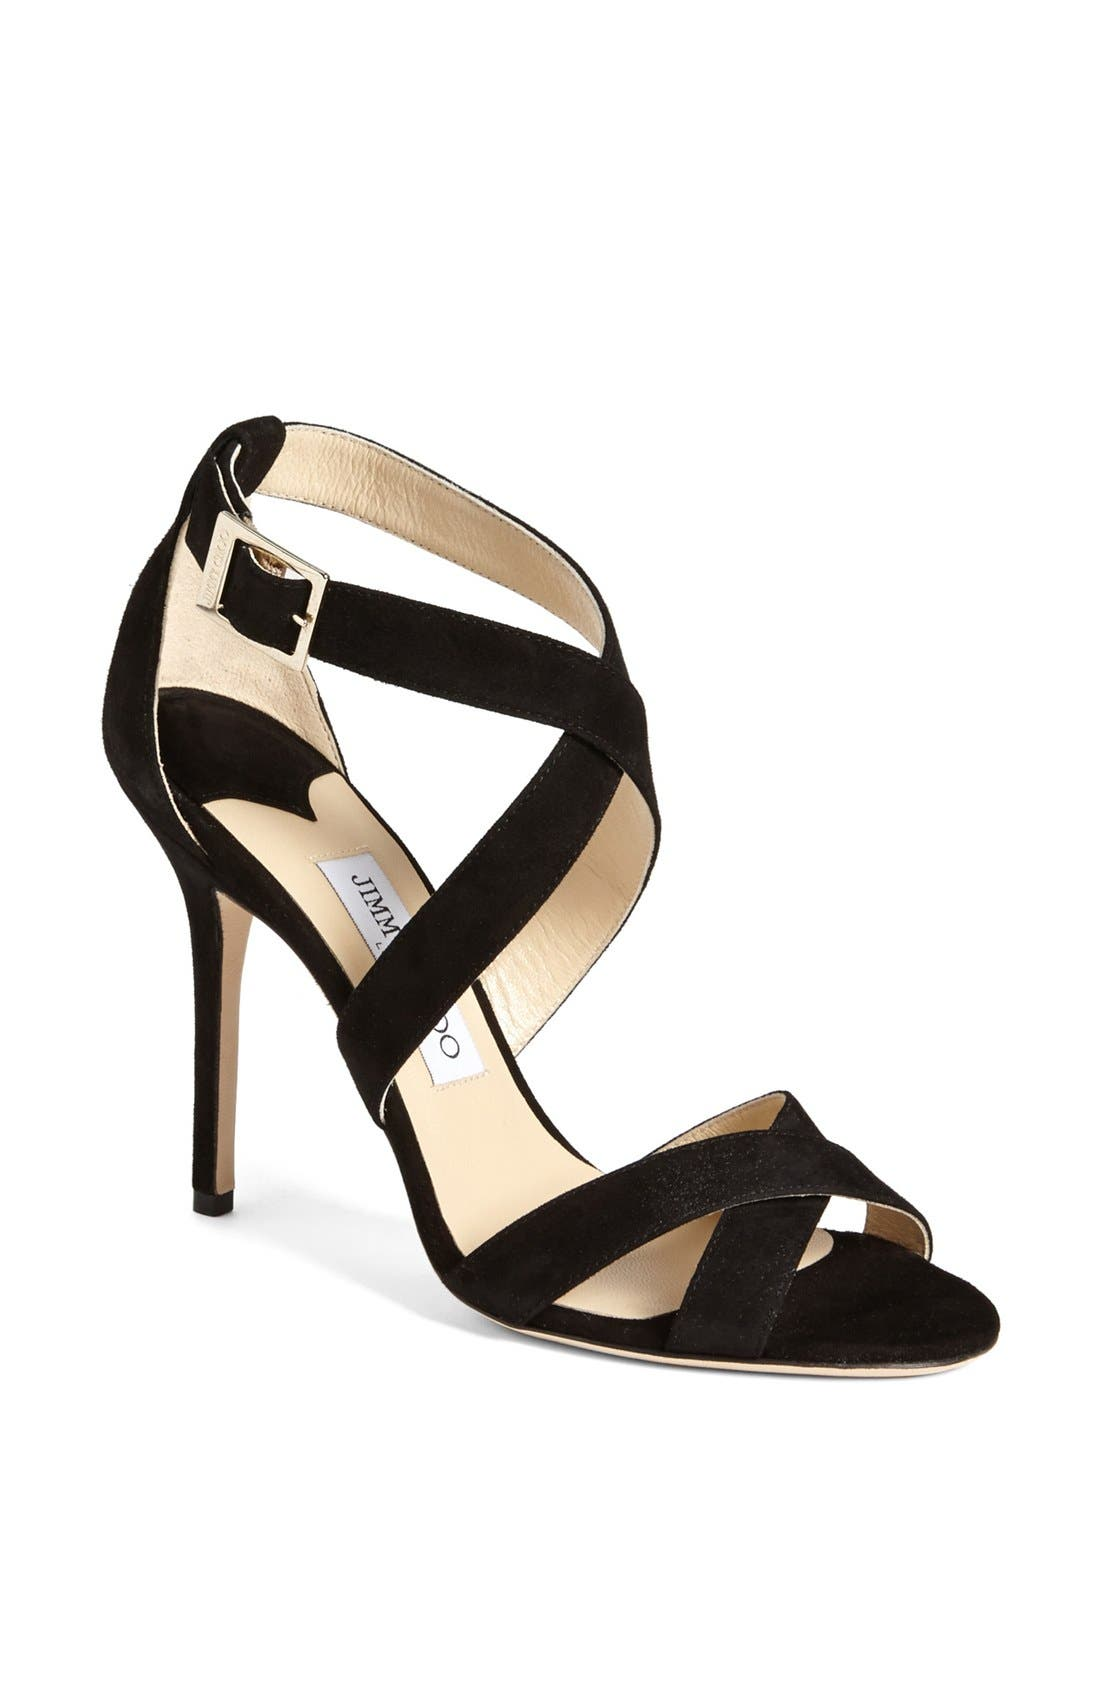 Alternate Image 1 Selected - Jimmy Choo 'Lottie' Sandal